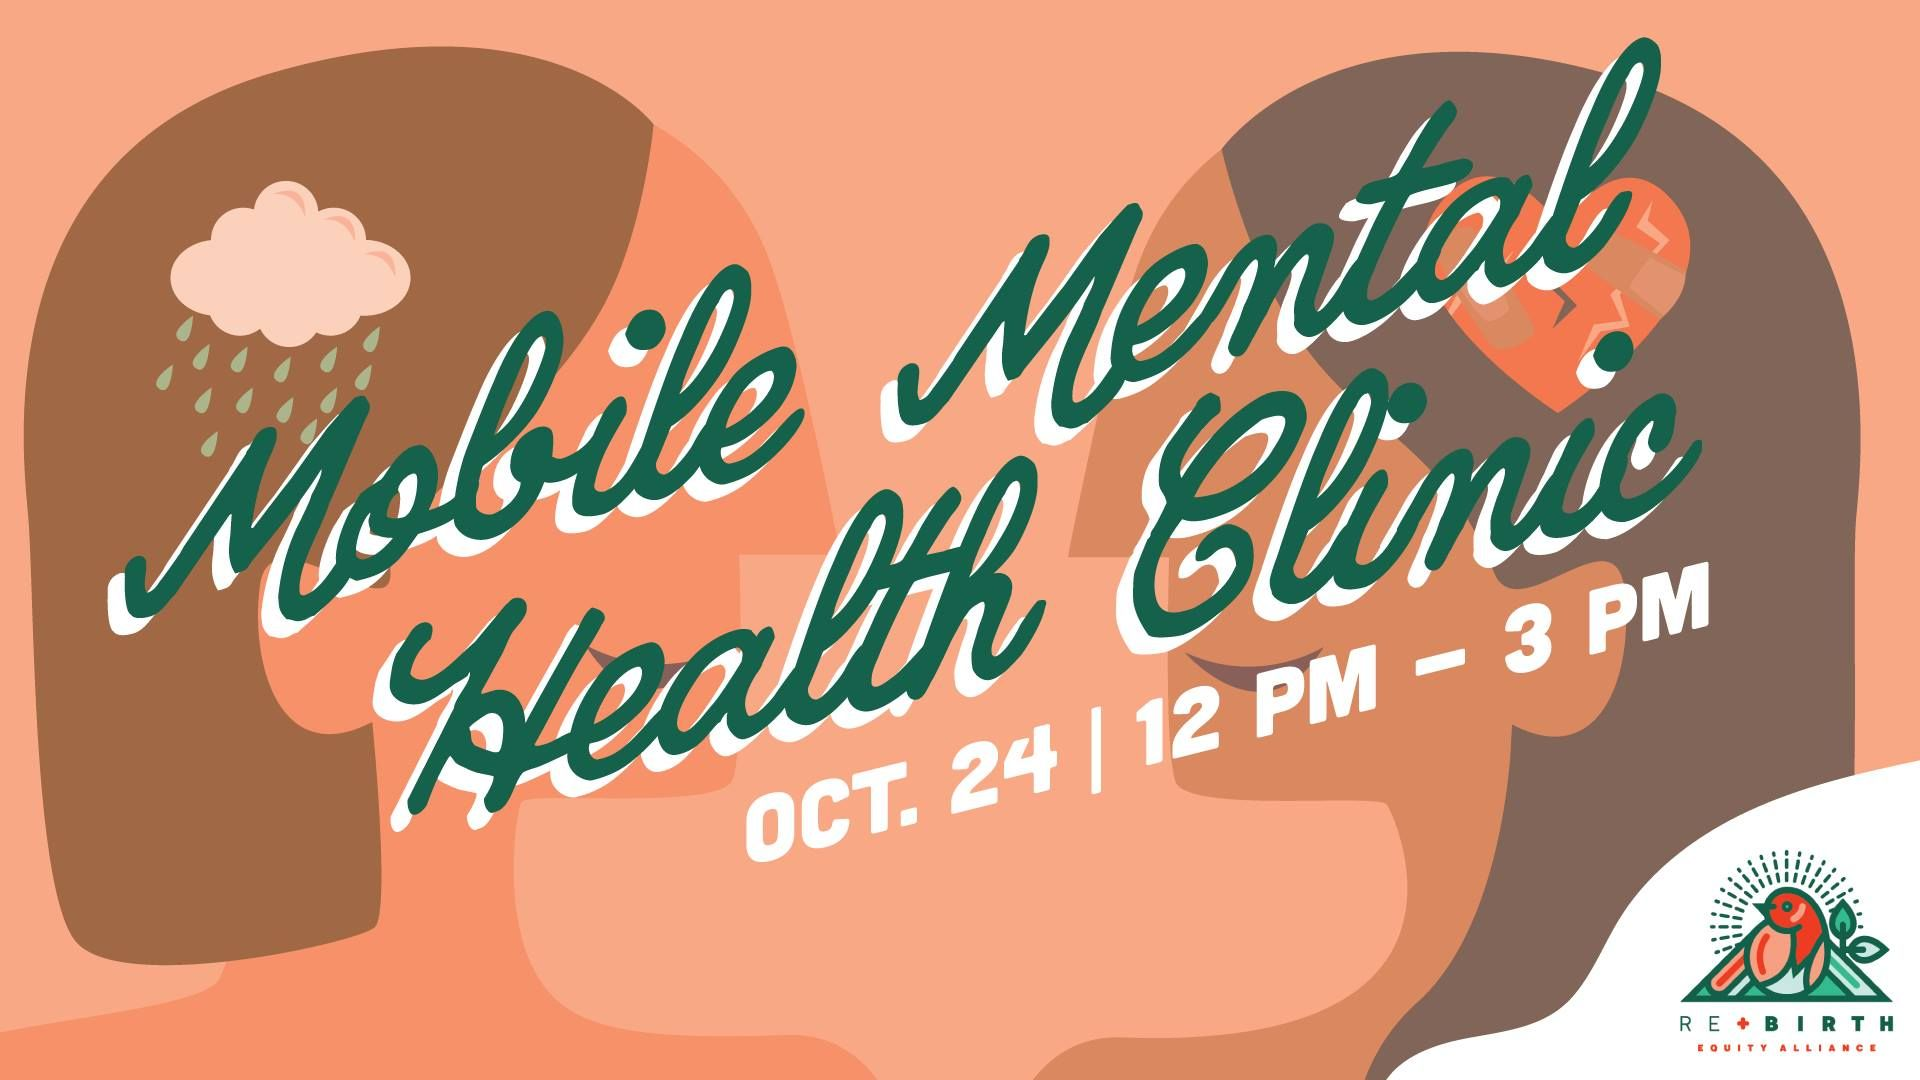 Mobile Mental Health Clinic